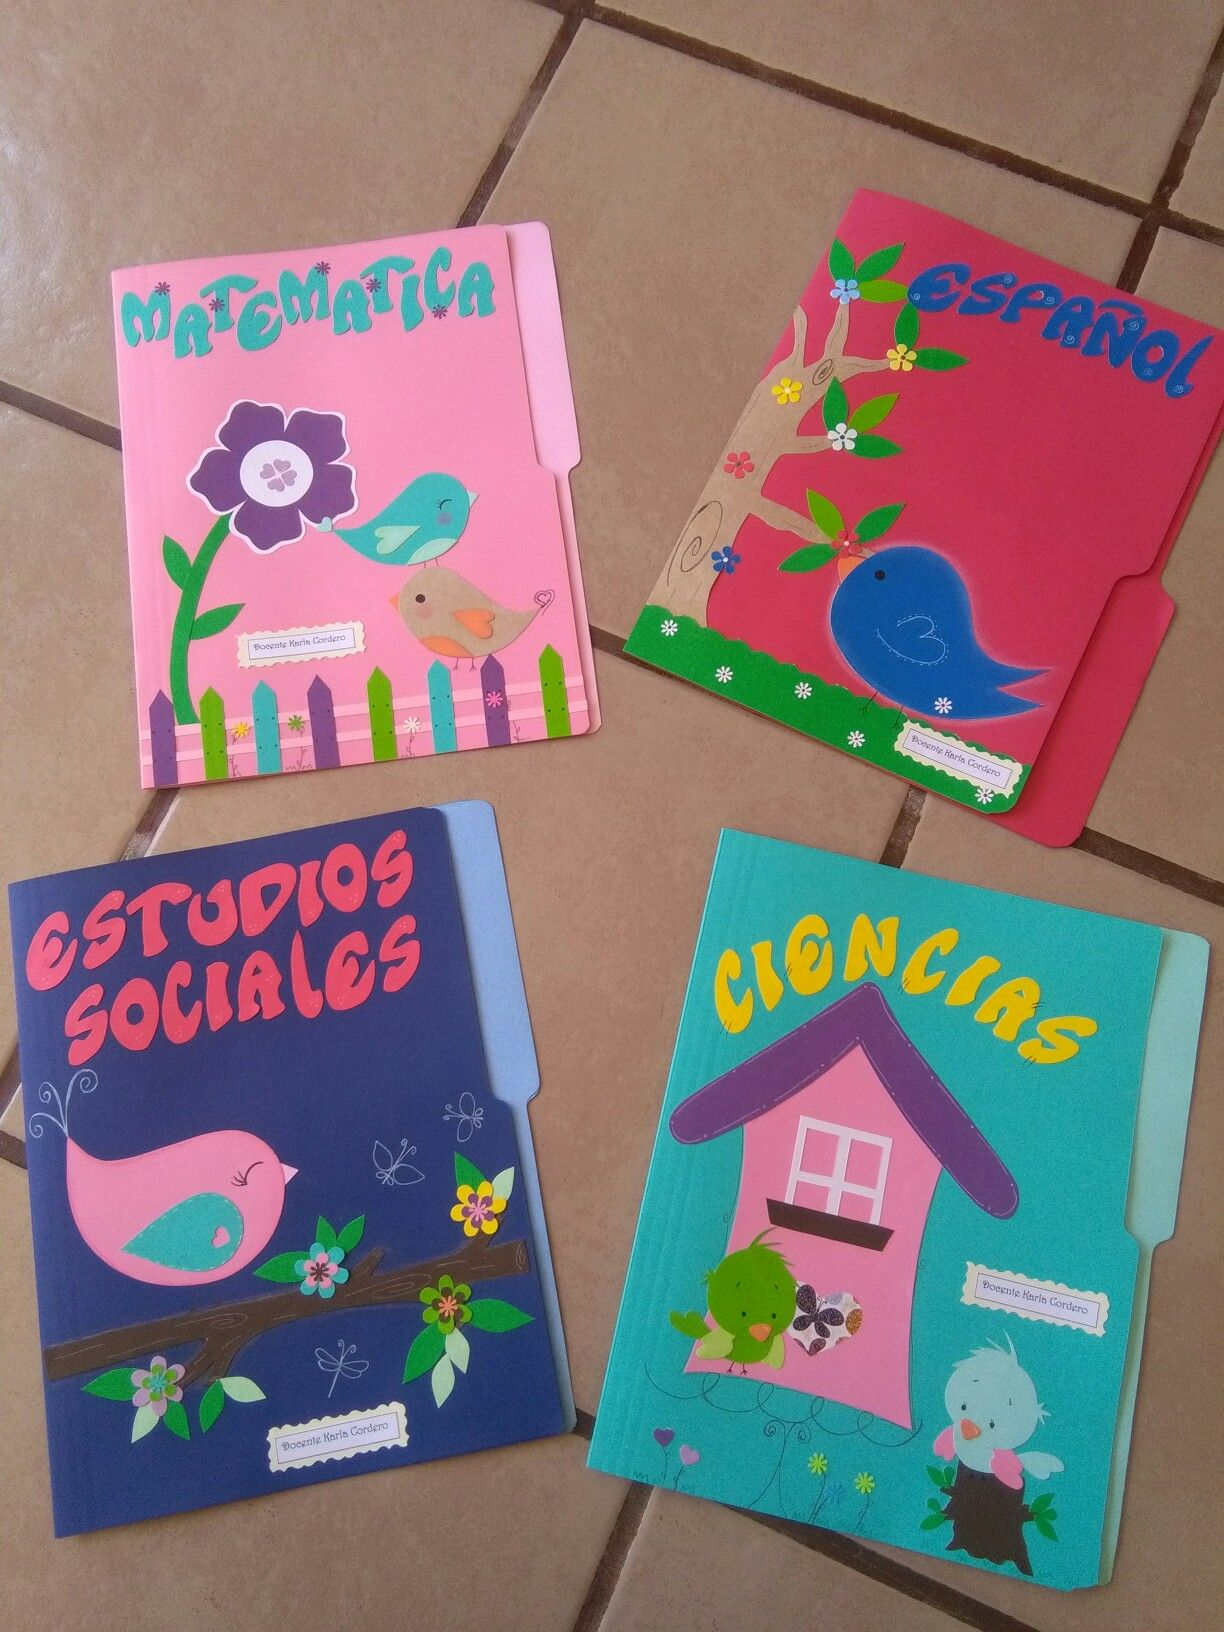 Como Decorar Una Carpeta Para Niños Folder Decorados Manualidades School Themes Ideas Y Crafts